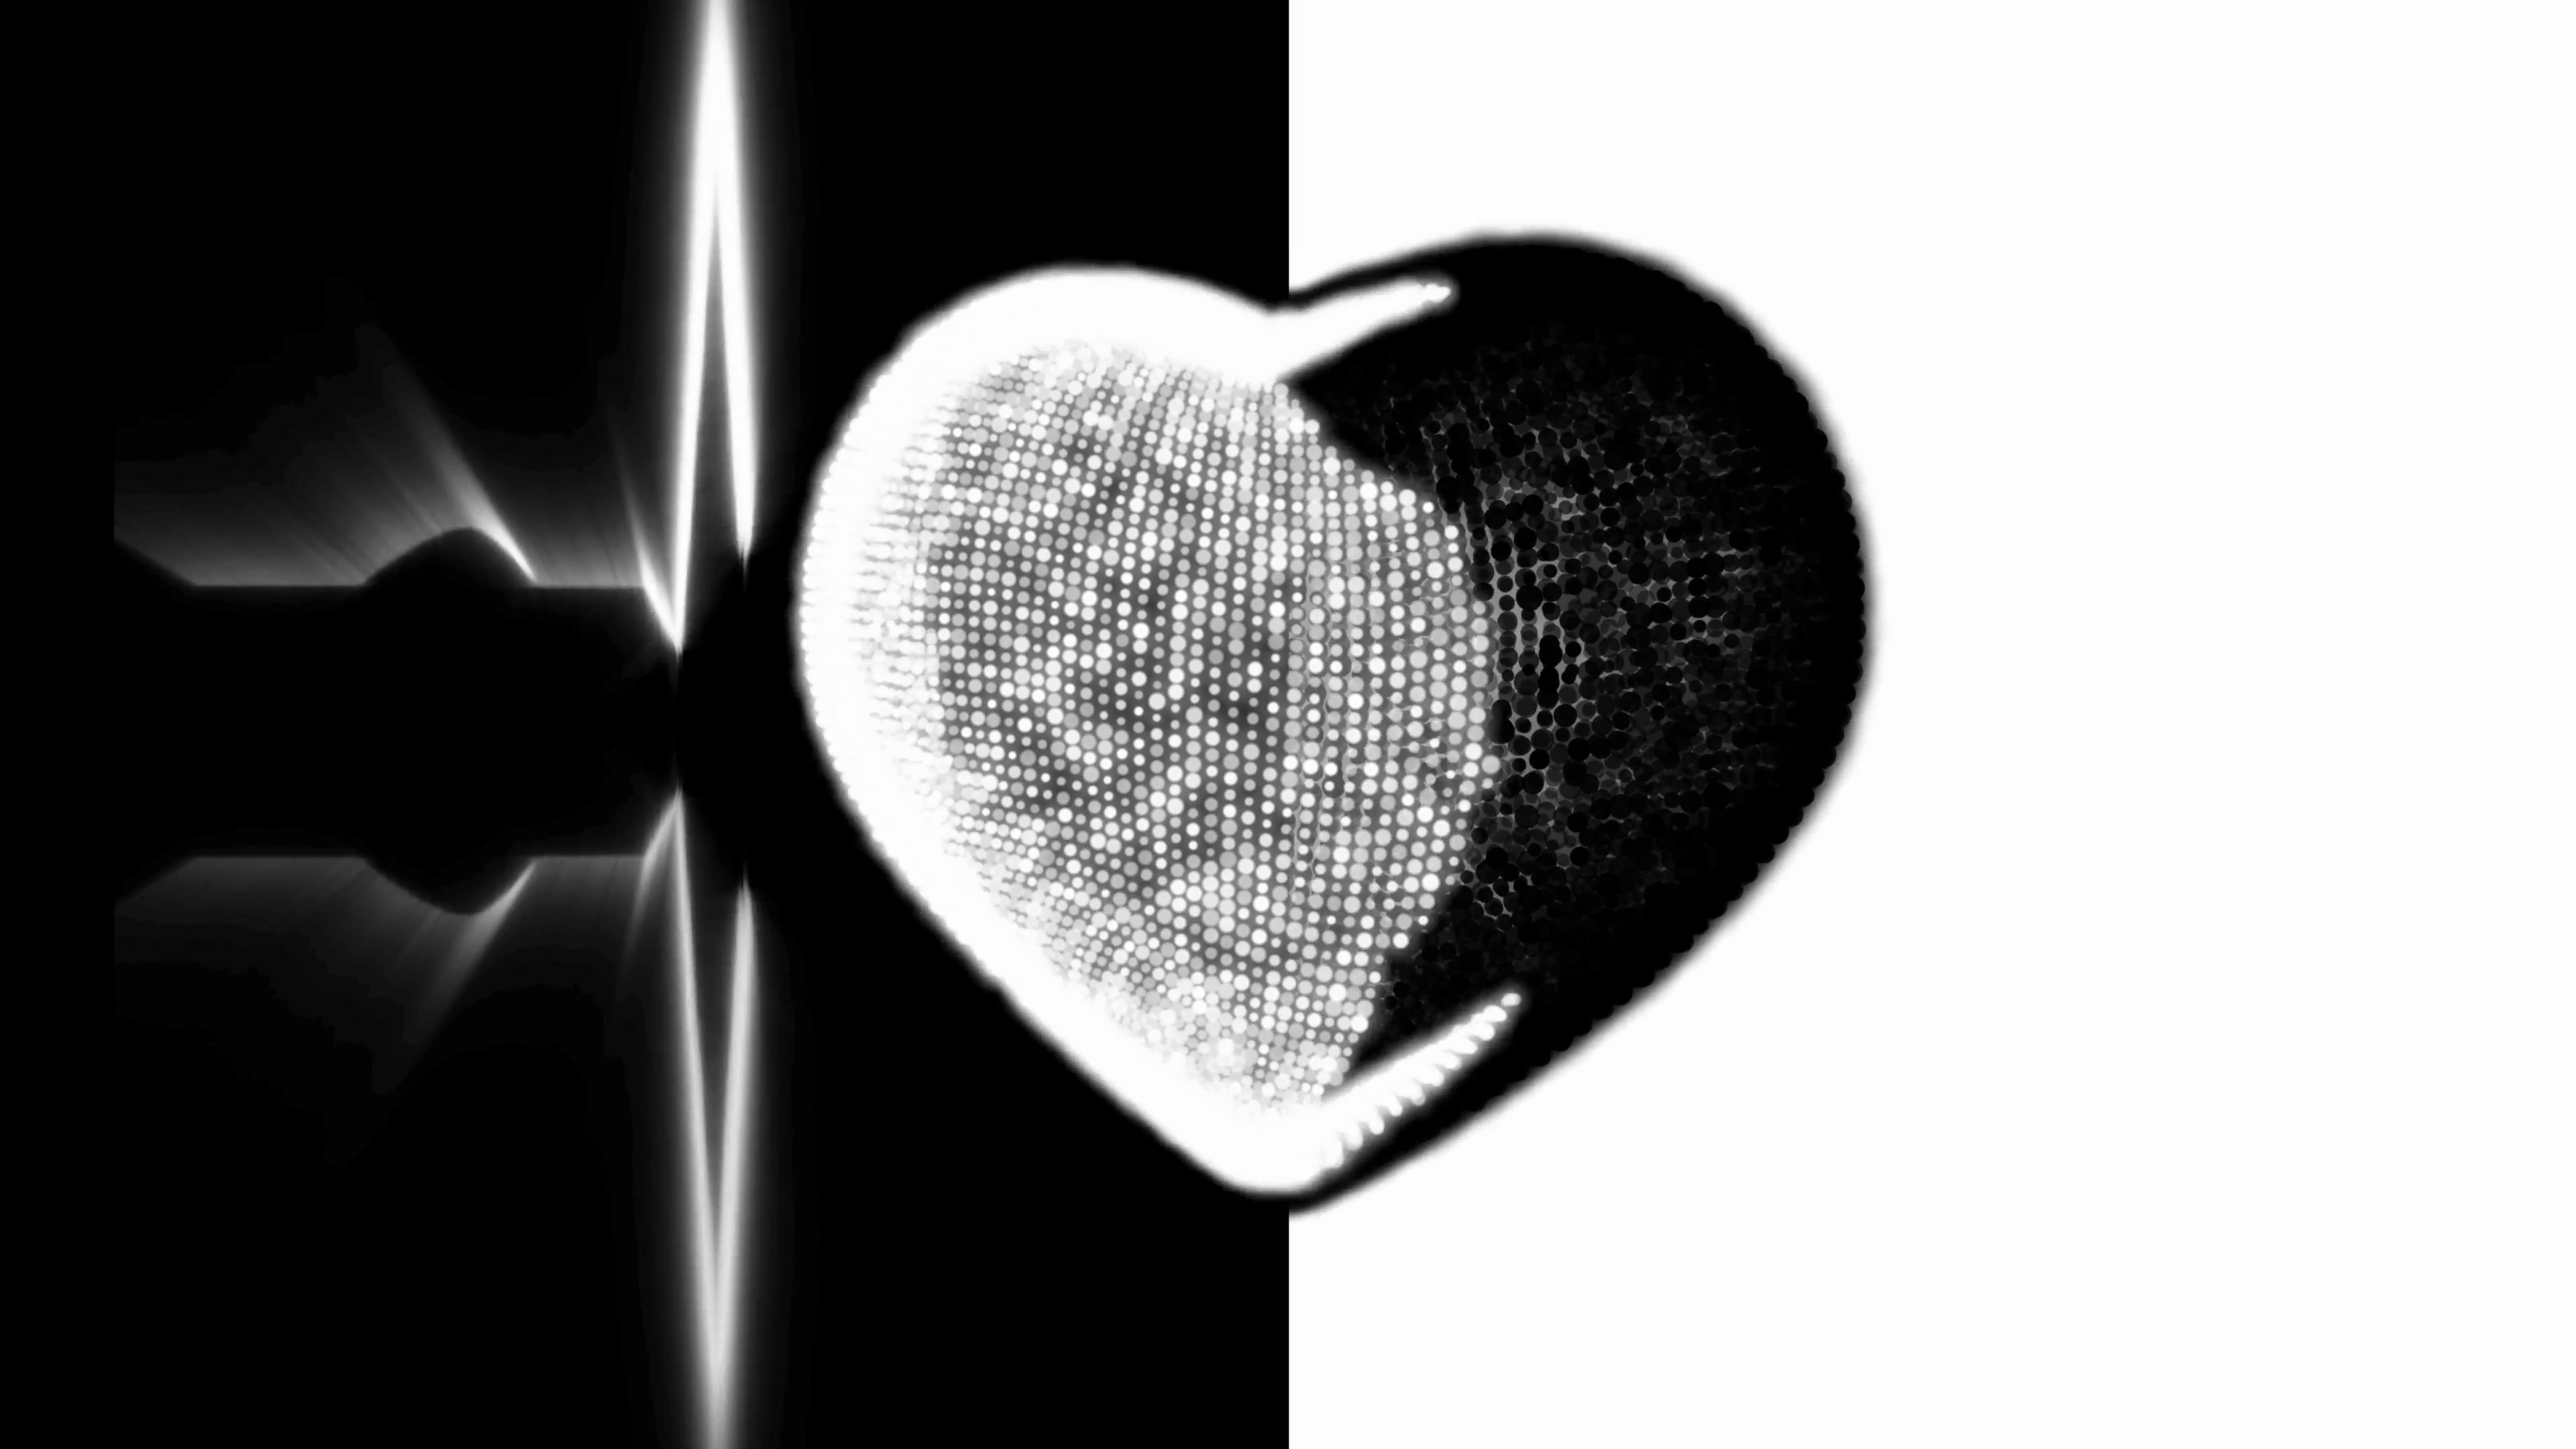 Black And White Heart Background 29 Images